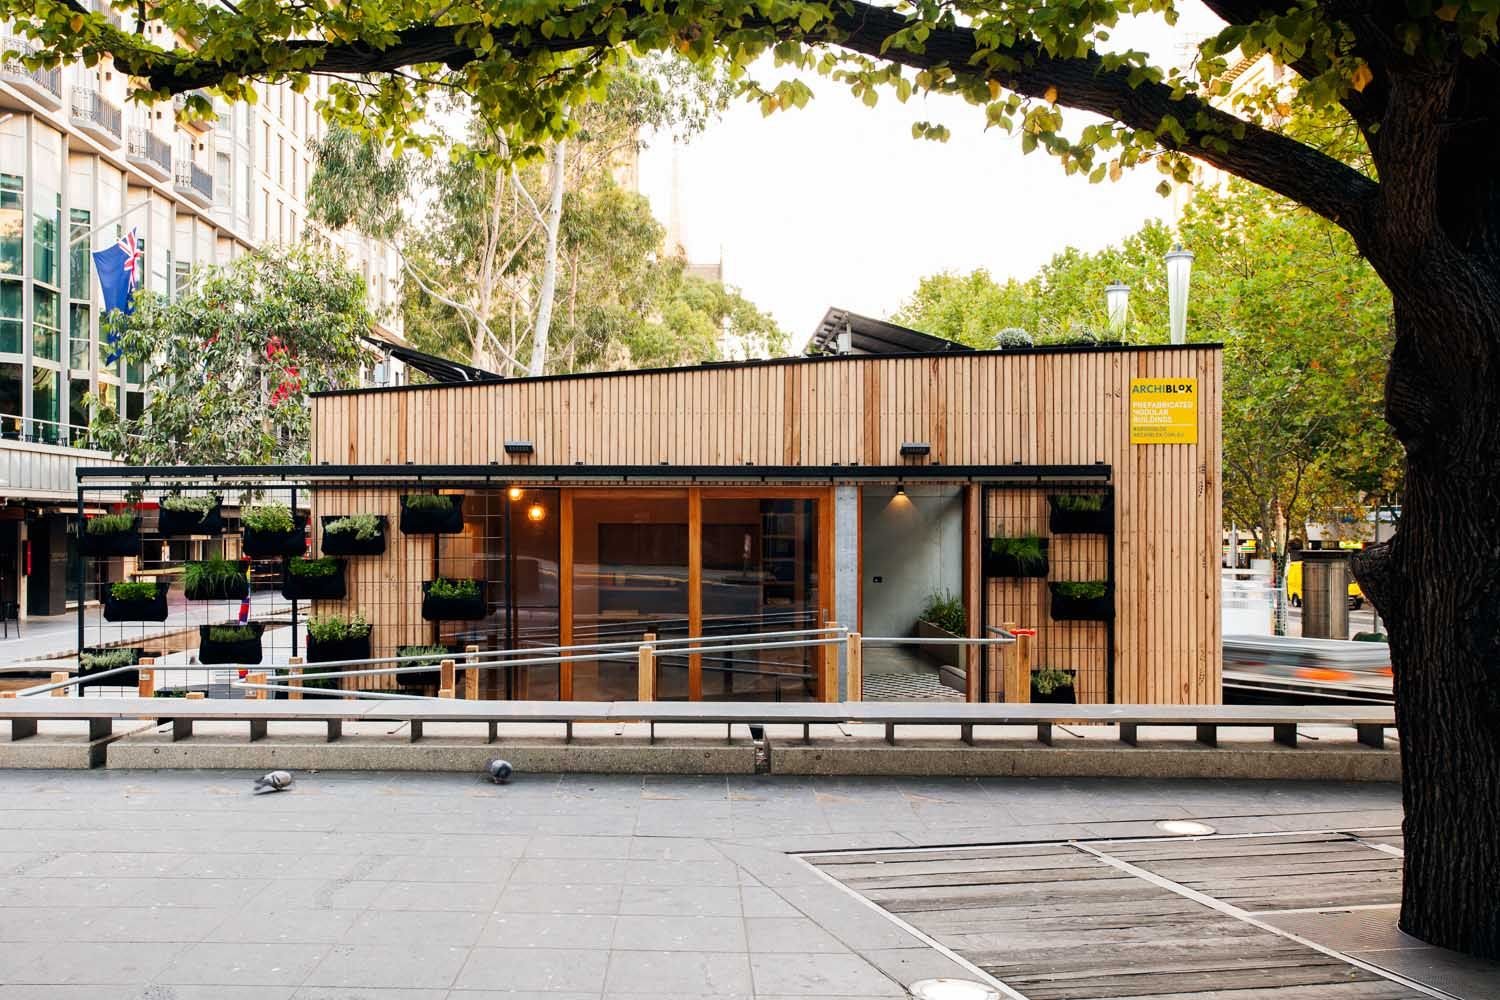 "Australian firm <a href=""https://www.dwell.com/design-source/org/archiblox"">Archiblox</a> has designed the world's first carbon-positive prefab. We take a tour of the space, which is currently on view in Melbourne's City Square."